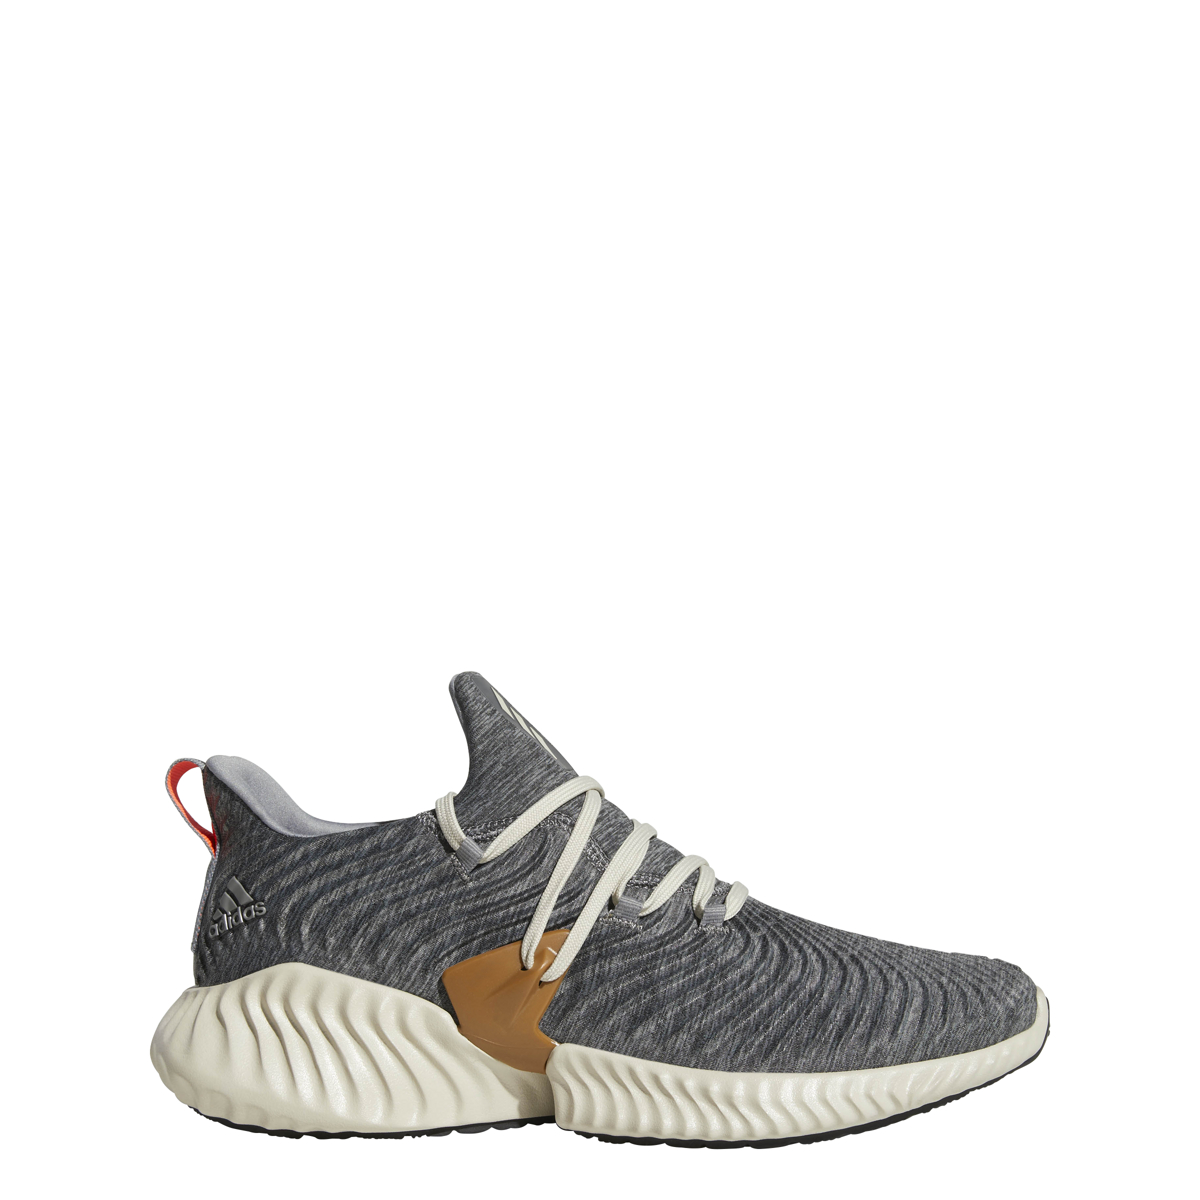 bd230e1f43854 Details about Men s Adidas Alphabounce Instinct M Running Shoe Core  Heather Clear Brown Black